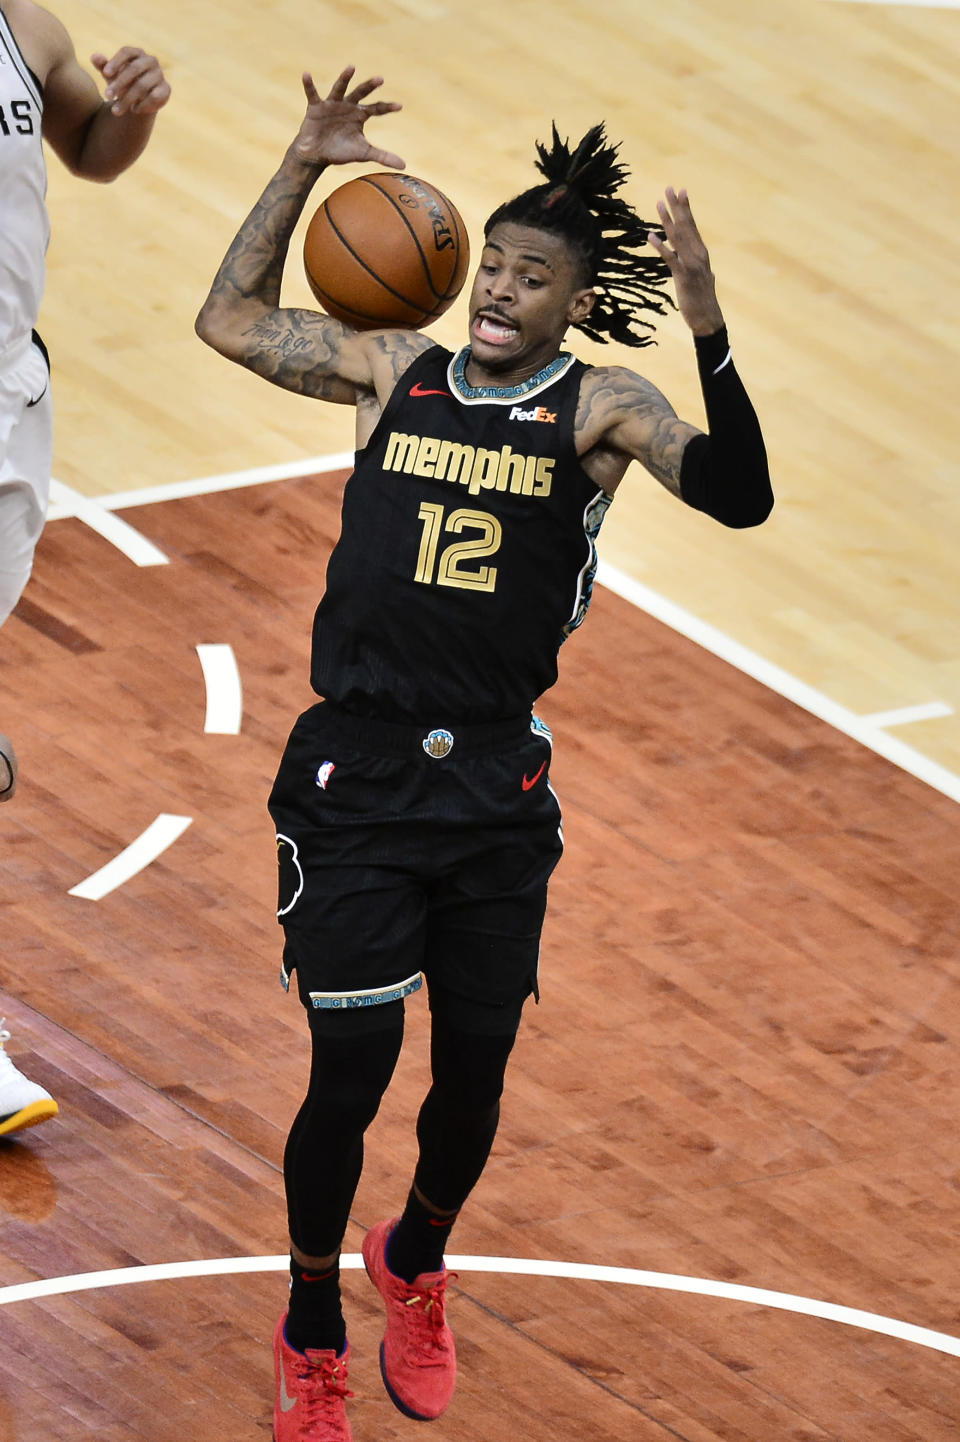 Memphis Grizzlies guard Ja Morant (12) scores against the San Antonio Spurs during the second half of an NBA basketball Western Conference play-in game Wednesday, May 19, 2021, in Memphis, Tenn. (AP Photo/Brandon Dill)